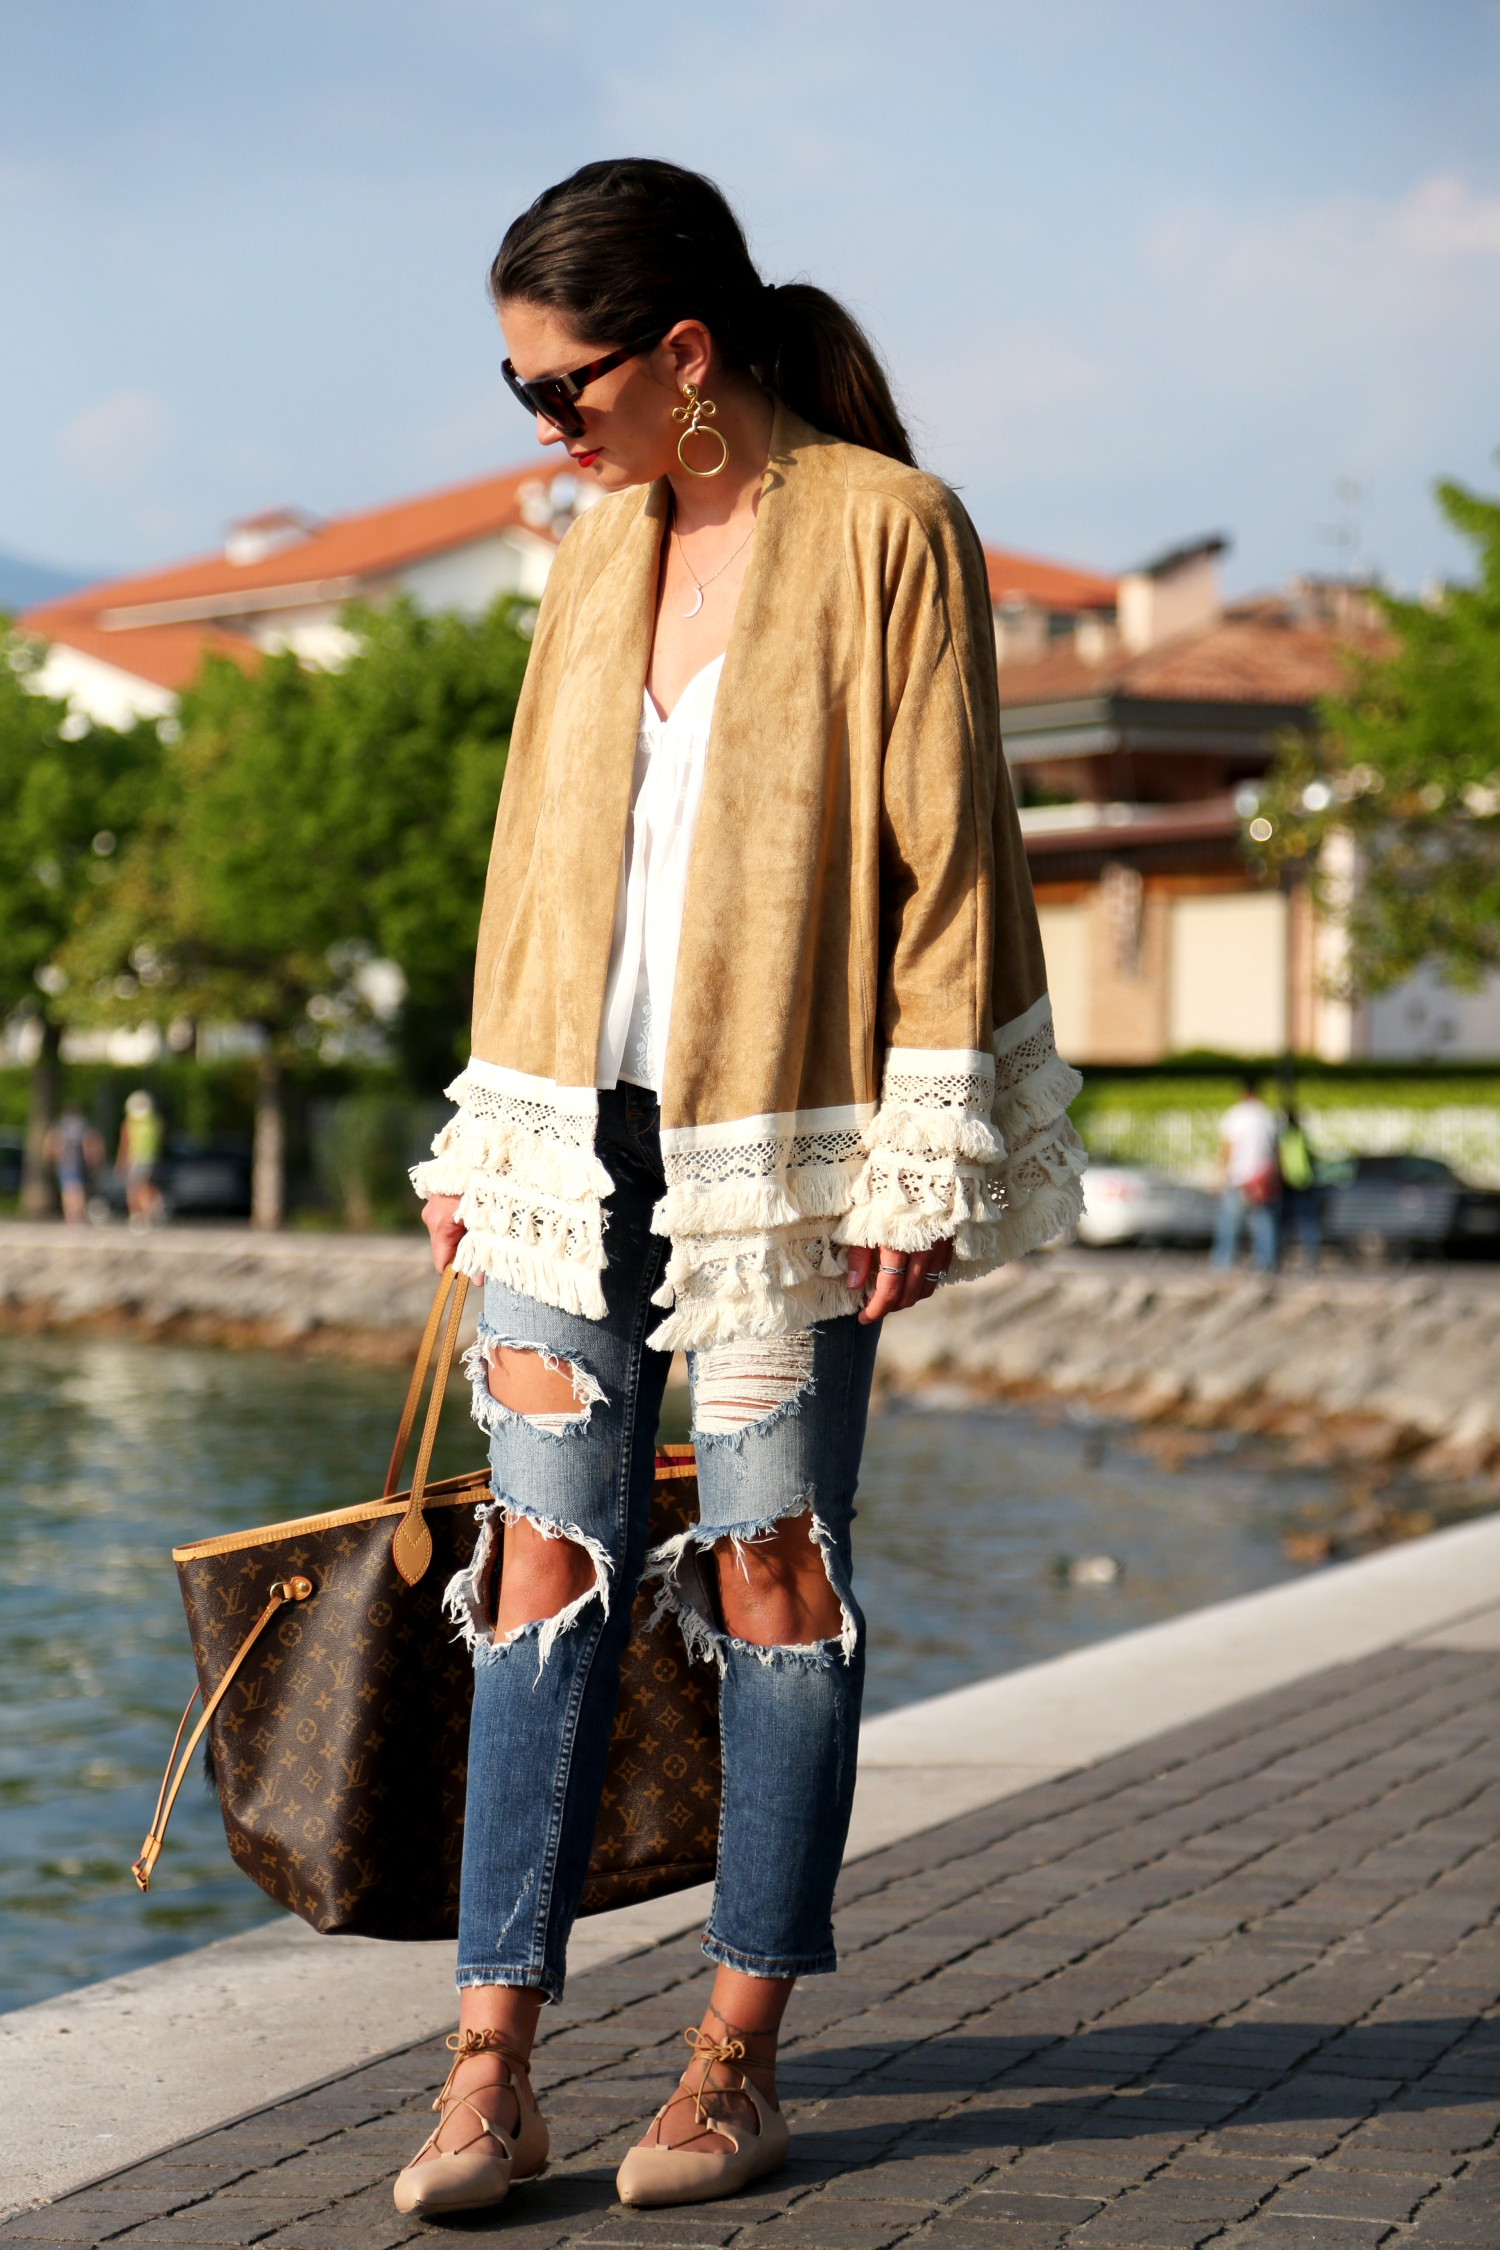 outfit-ripped-jeans-louisvuitton-bag-lace-up-sandals-kimono